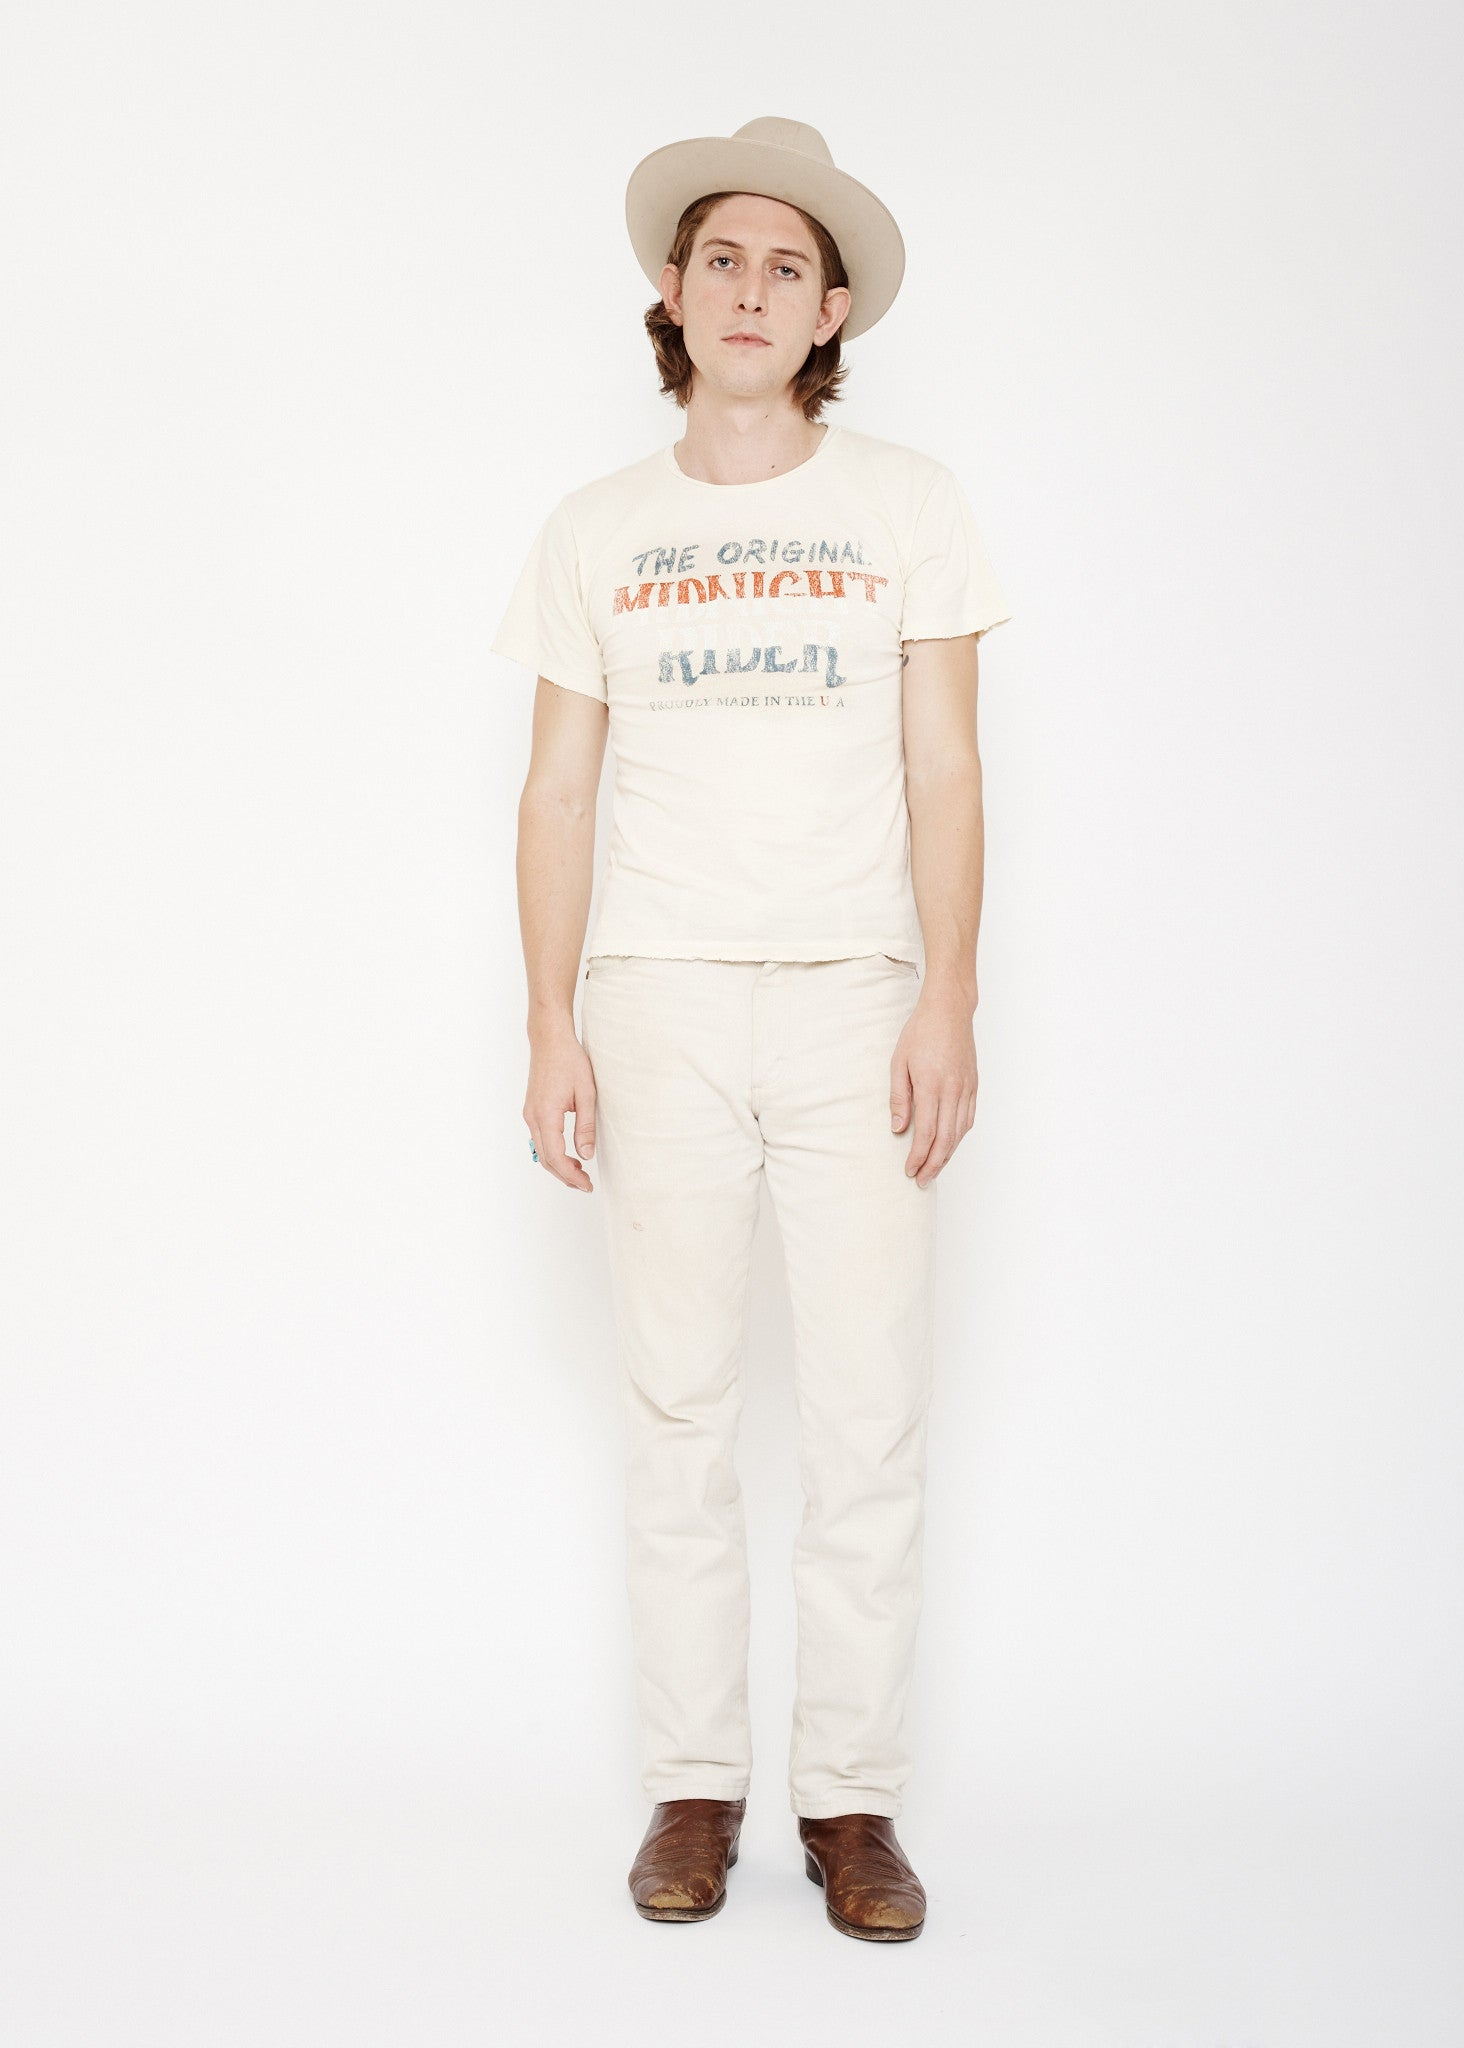 Original Midnight Rider Unisex Crew - Dirty White